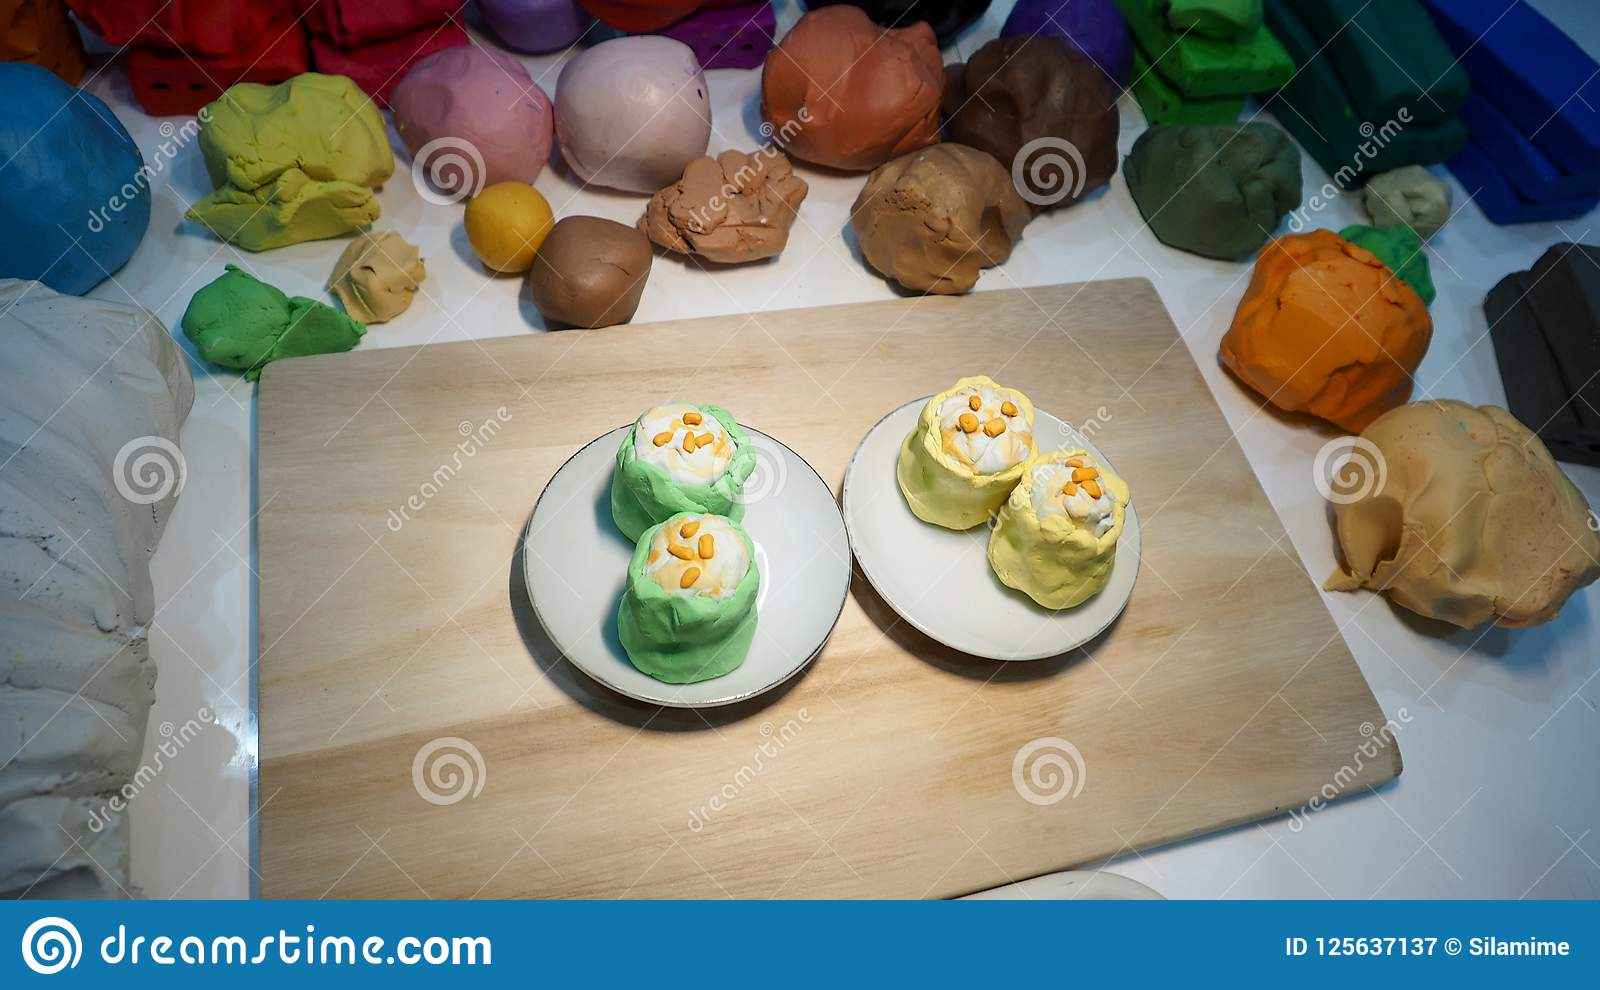 Mold clay food is dim sum shrimp yellow and green create art of